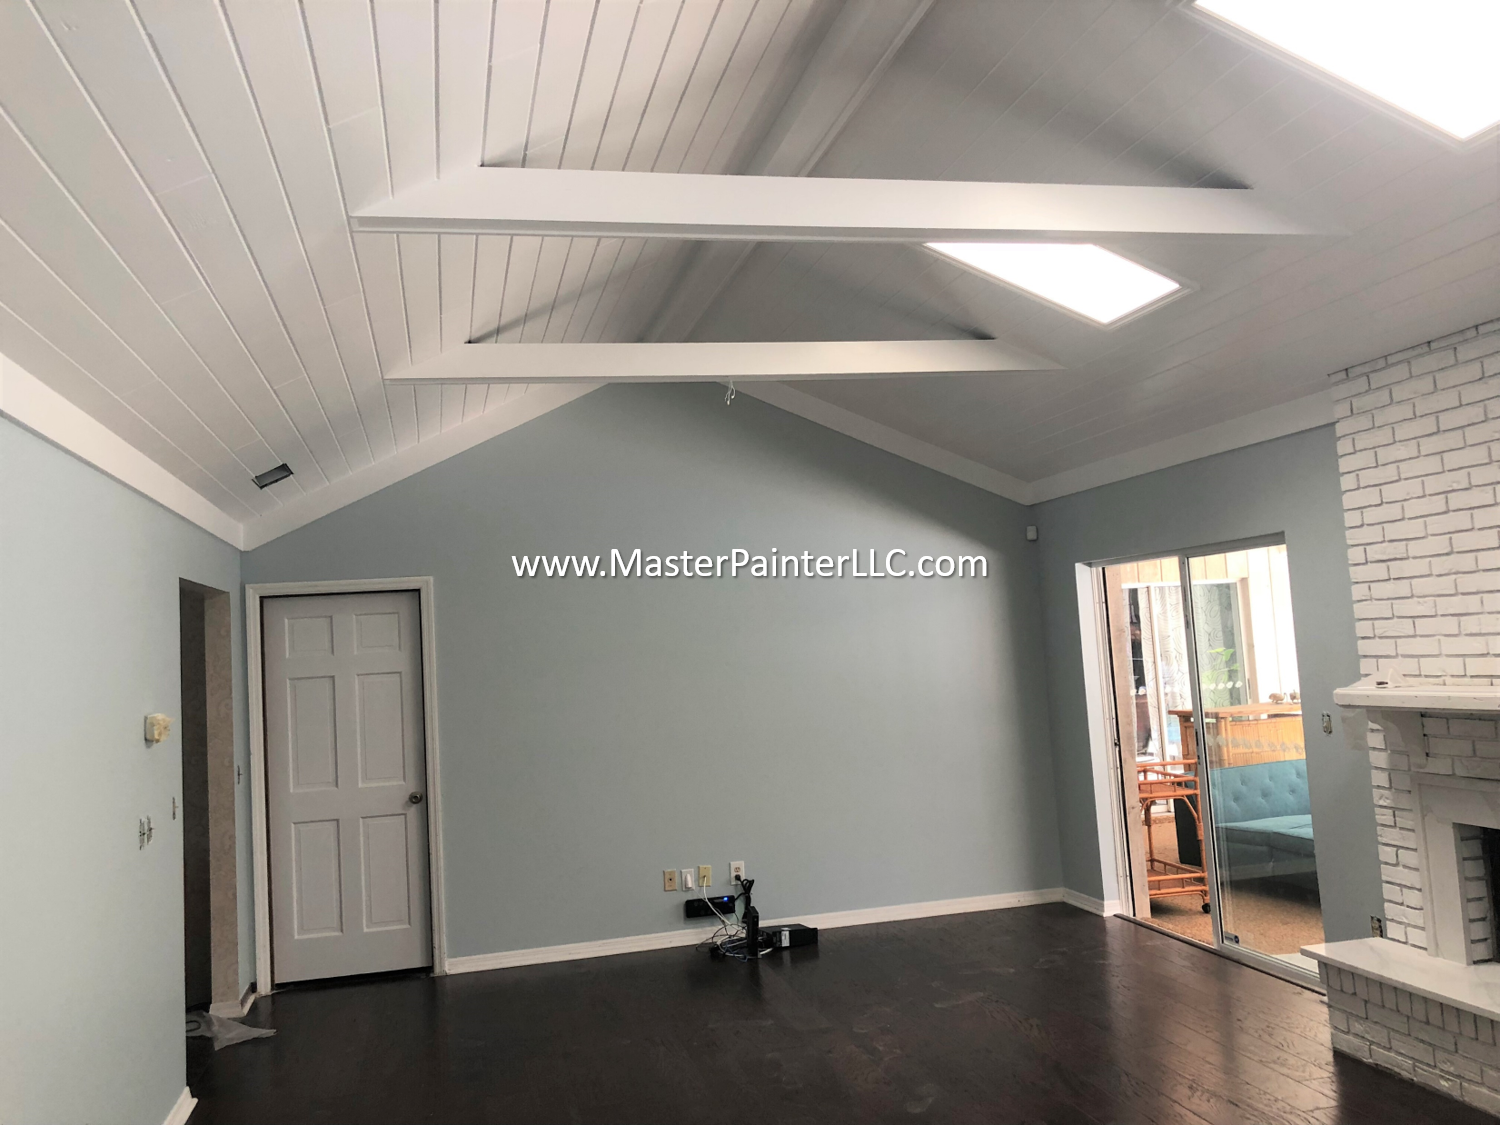 Living room walls, ceiling and trim